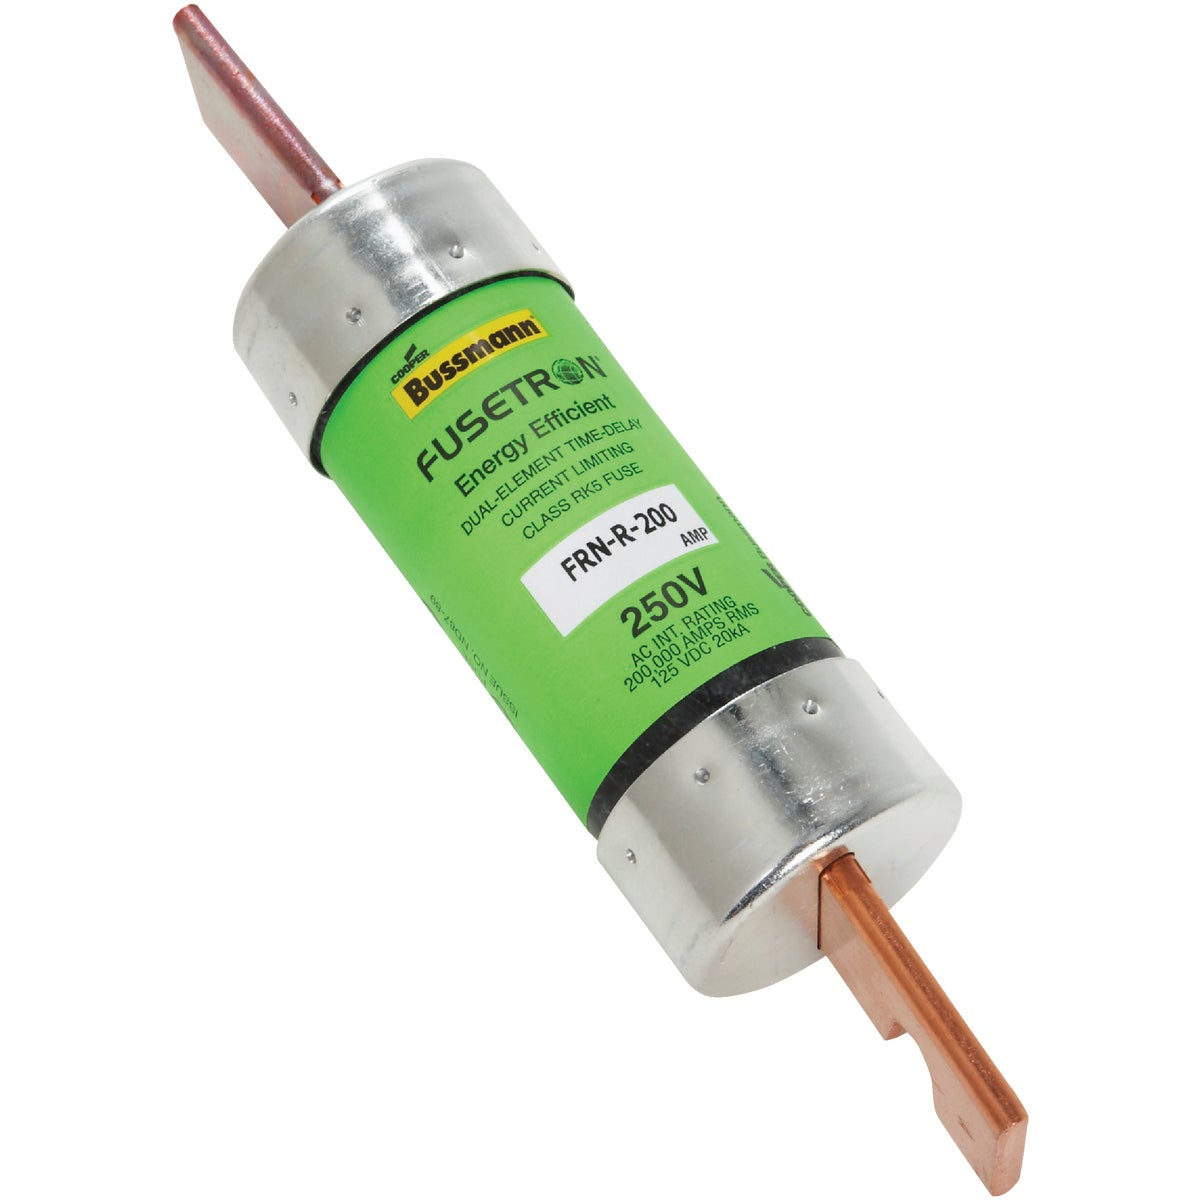 200A TD CARTRIDGE FUSE - FRN-R-200 by Bussmann Cooper